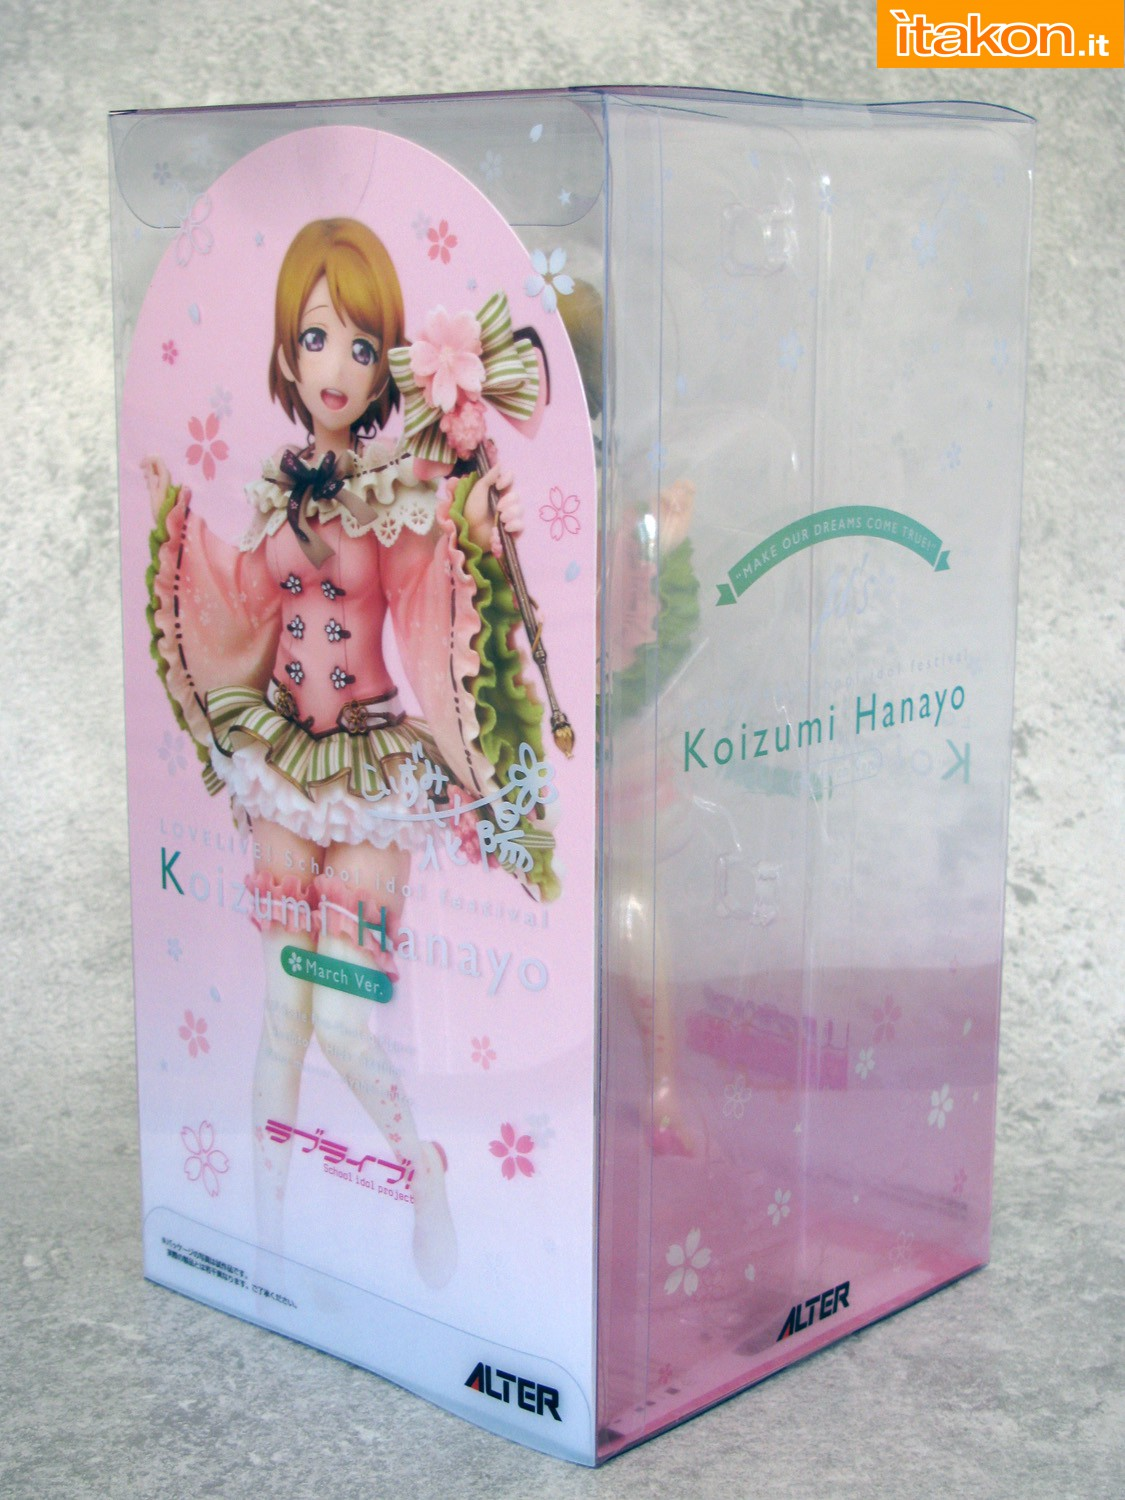 Link a 002 Hanayo Koizkumi March Love Live ALTER recensione